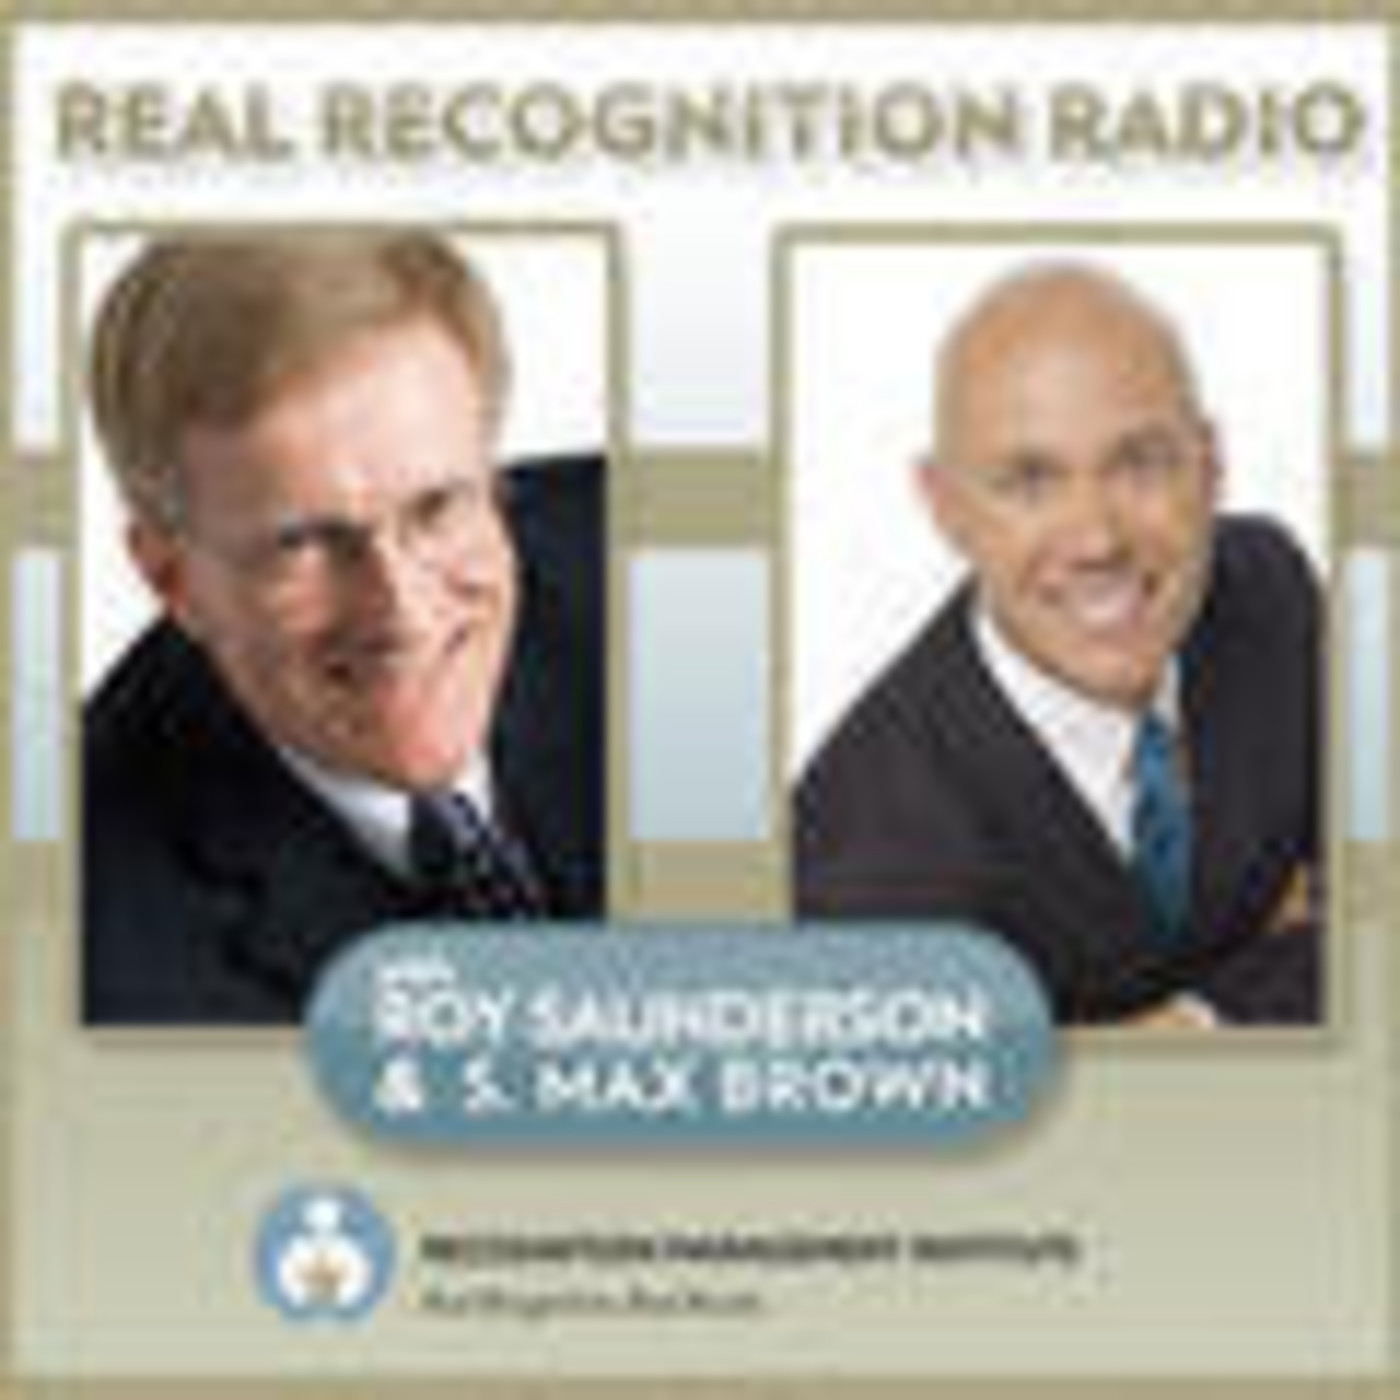 Roy Saunderson and S. Max Brow